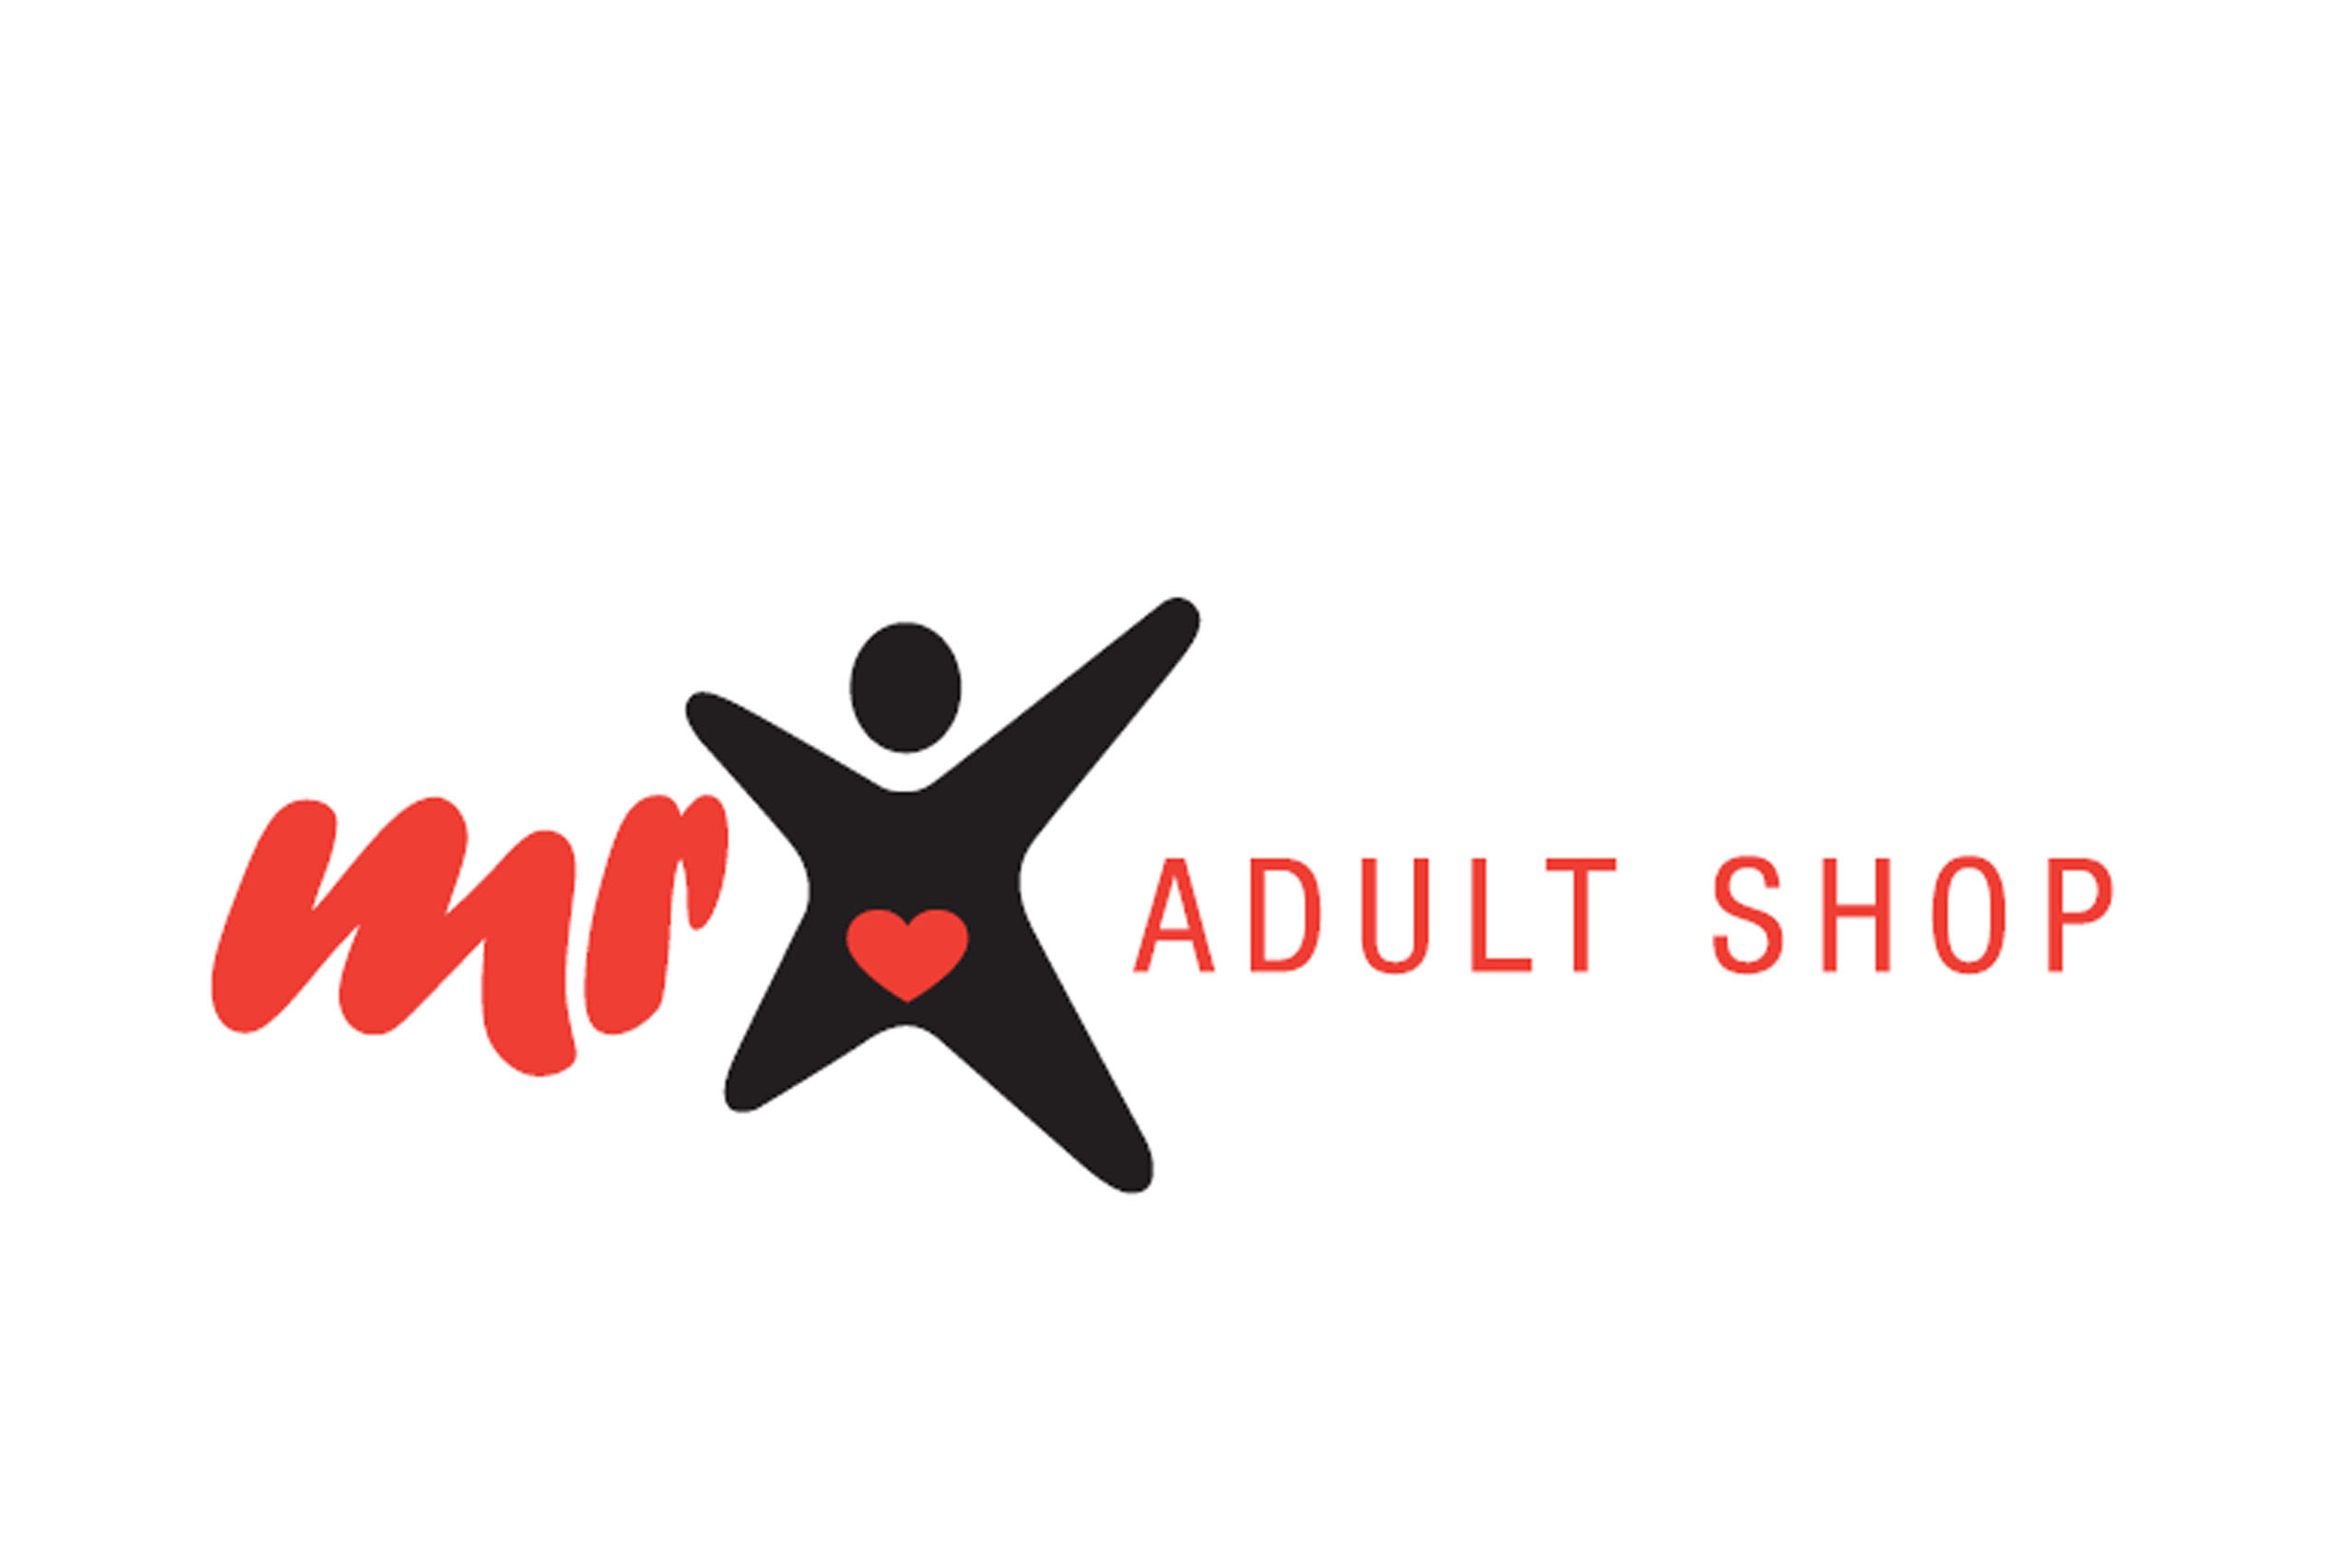 Mr X Adult Shop